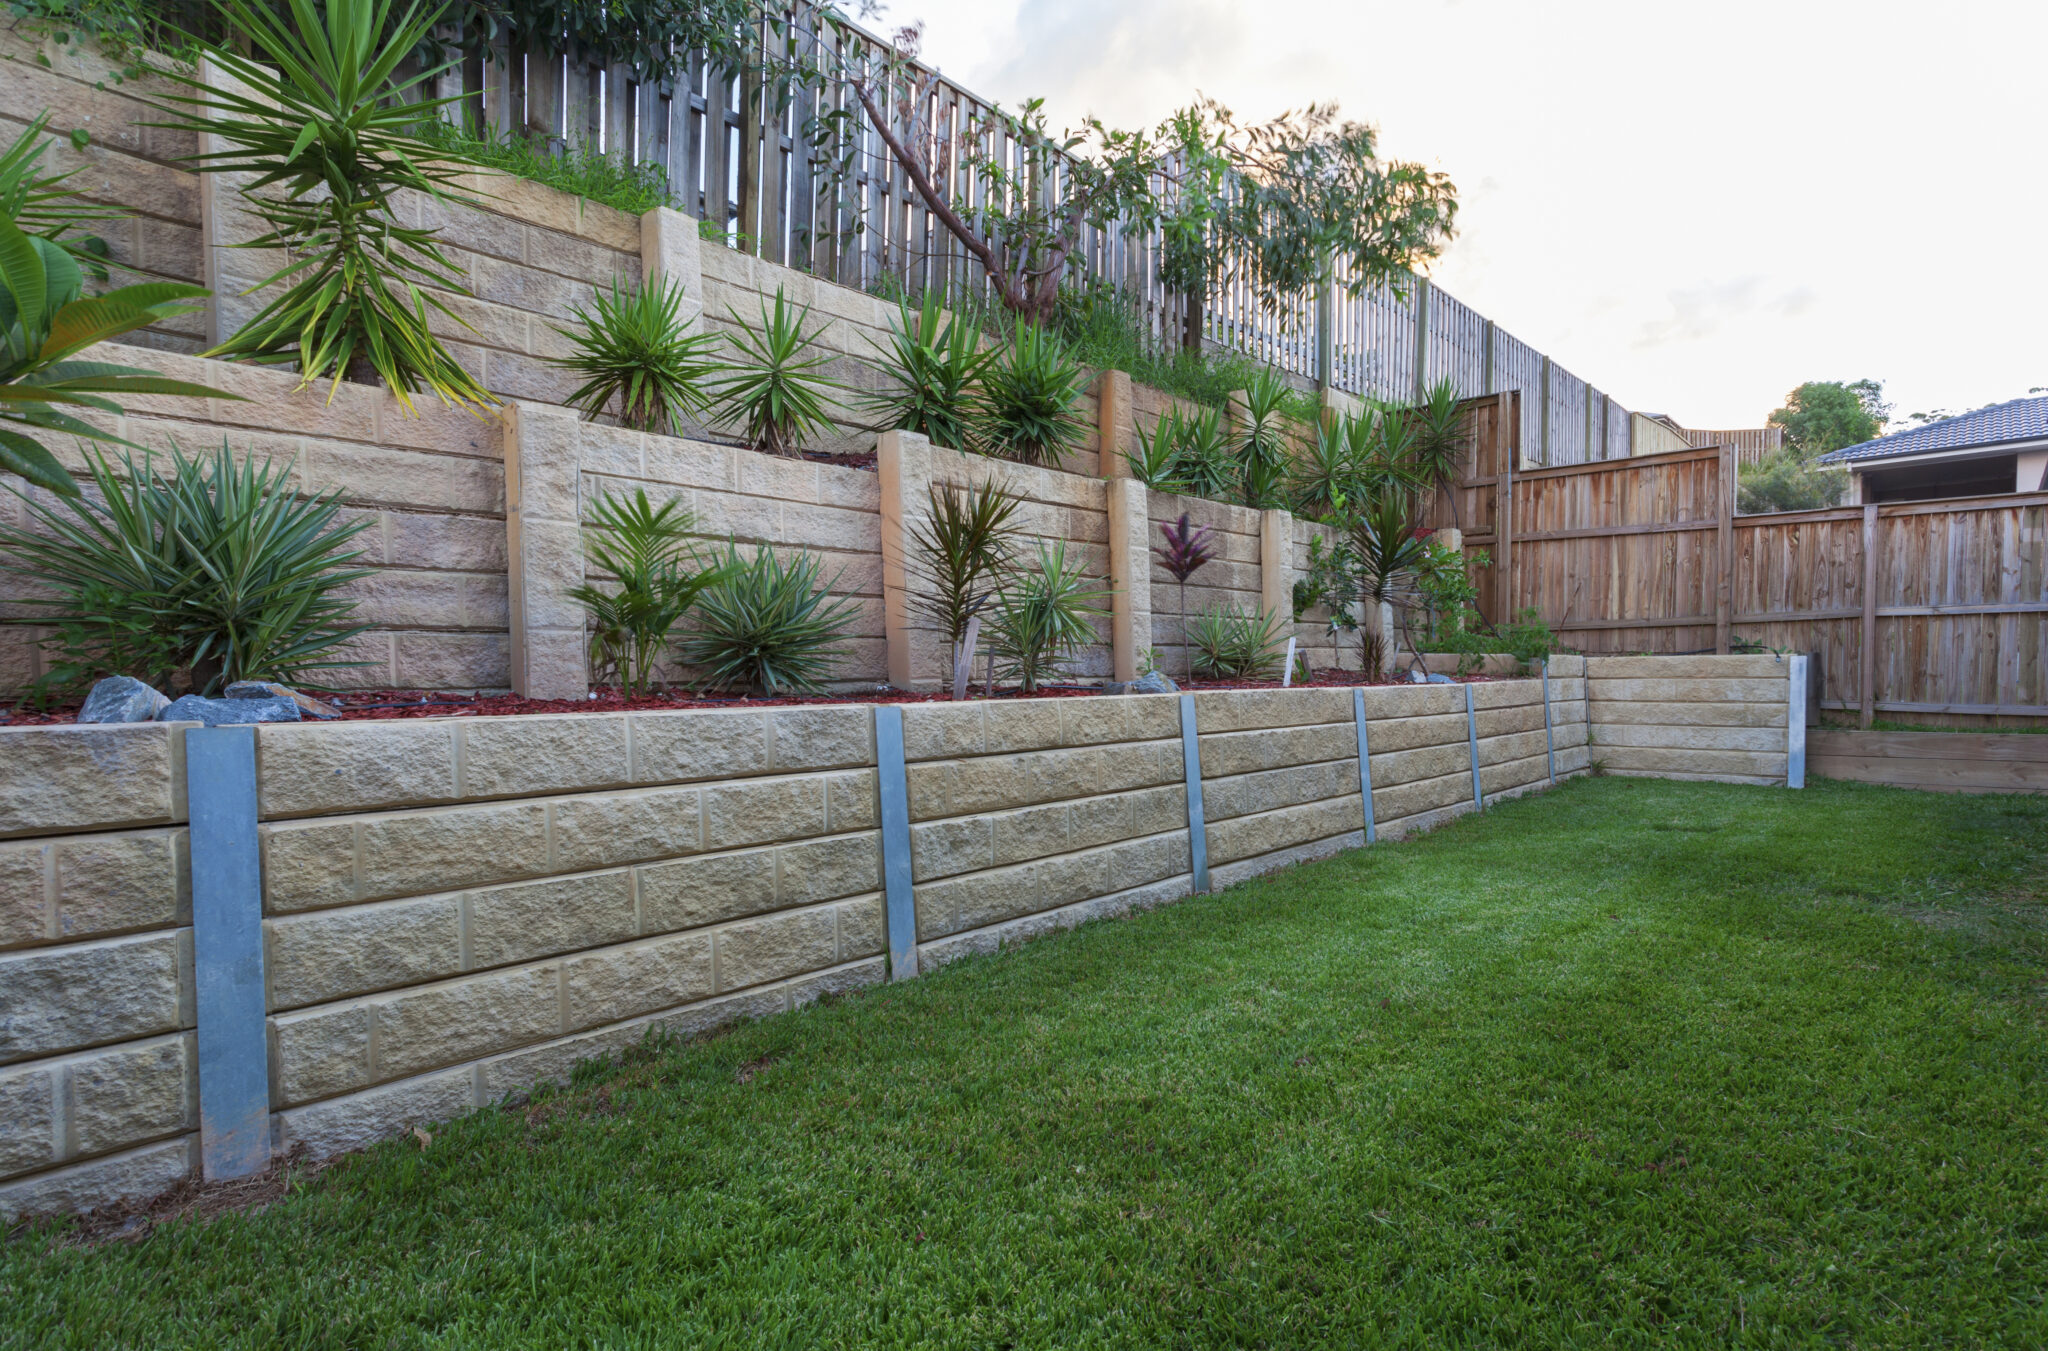 A multi-level retaining wall with plants in a backyard.